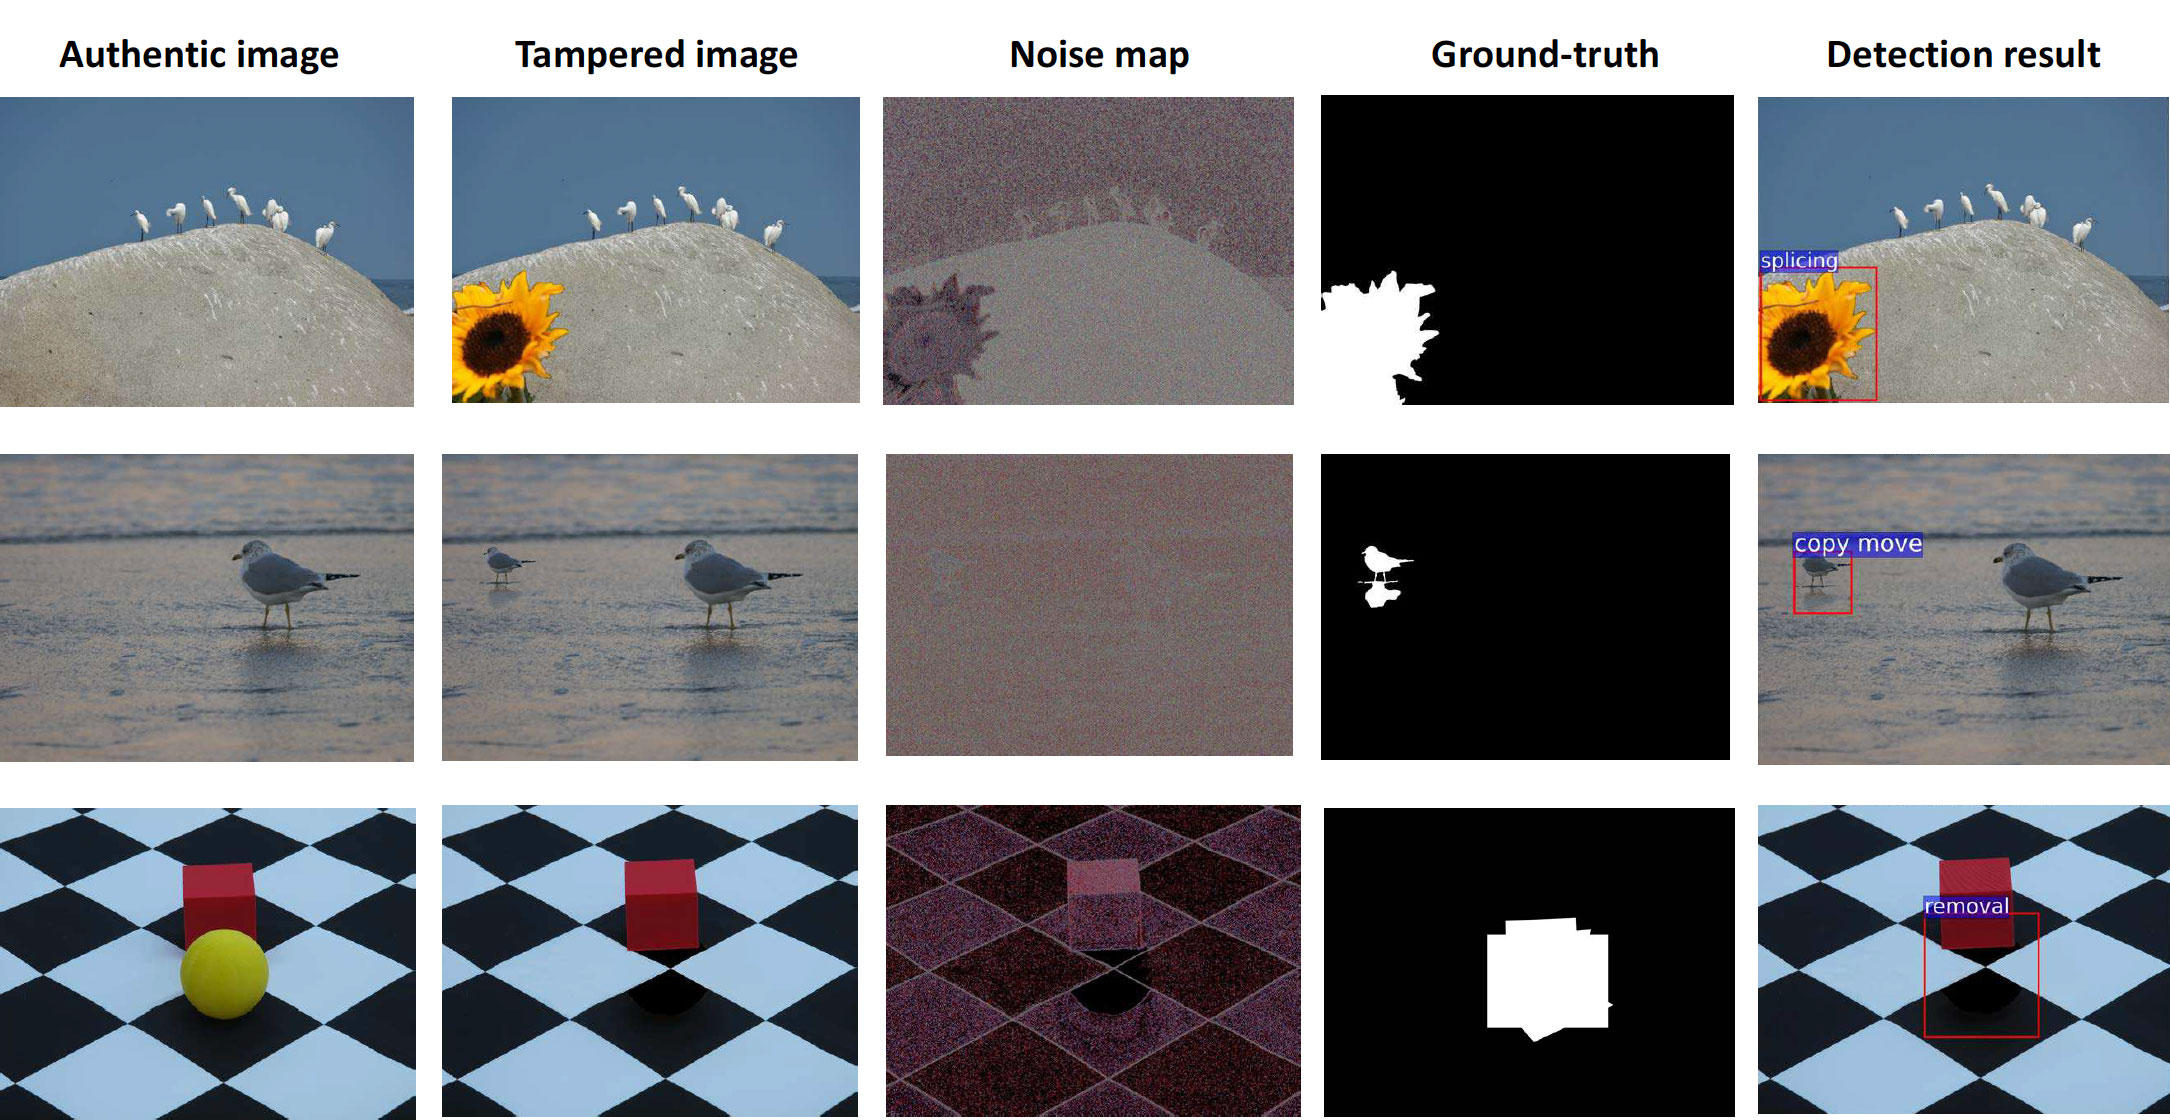 Trained with real real-world tampered images, a neural network learns to spot telltale signs that a photo has been tampered with.